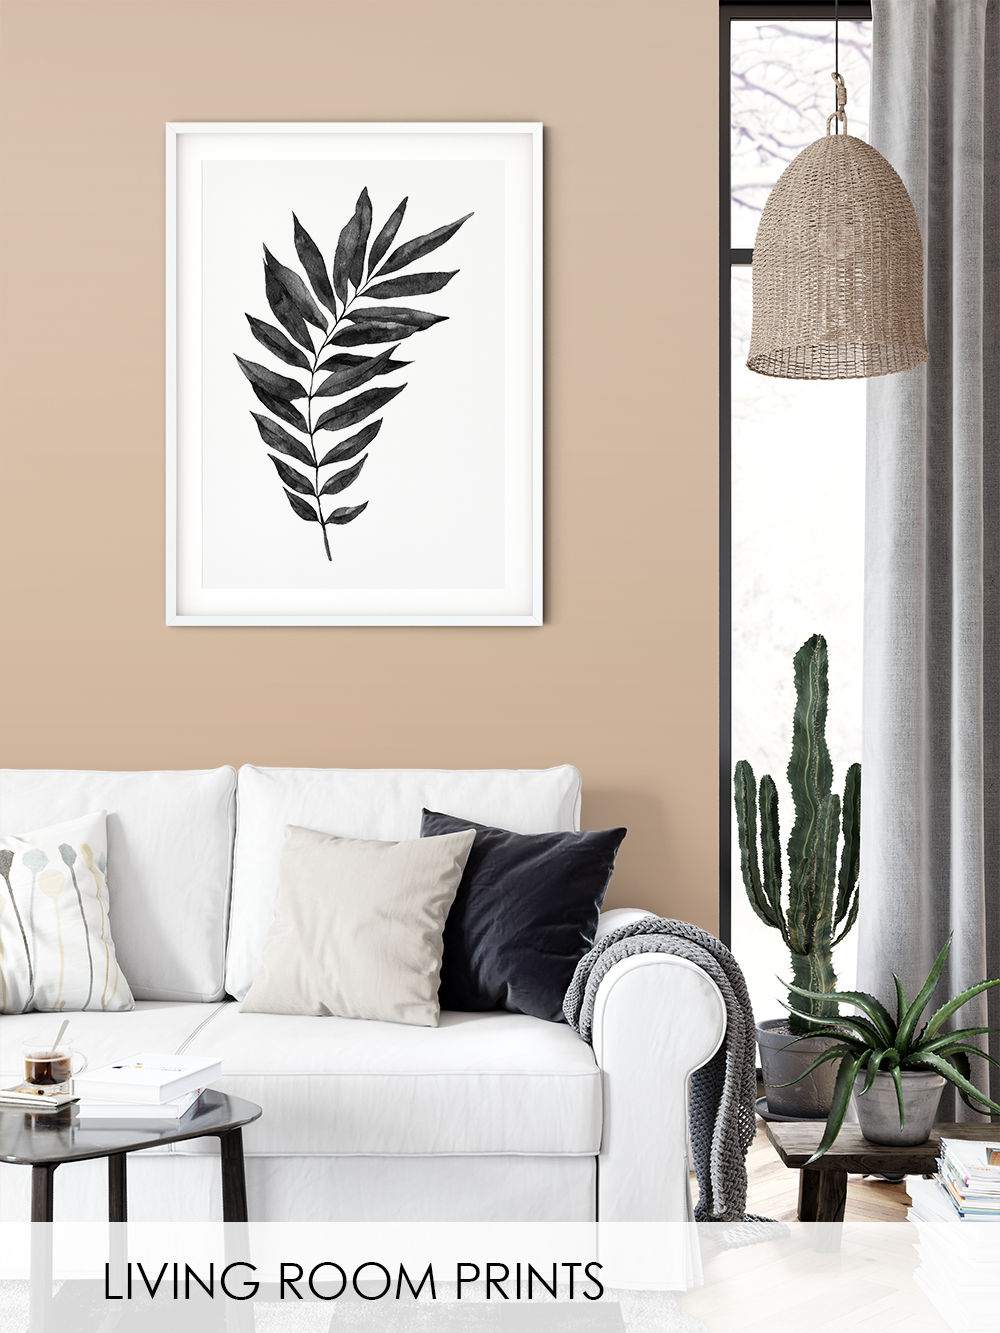 LIVING ROOM PRINTS